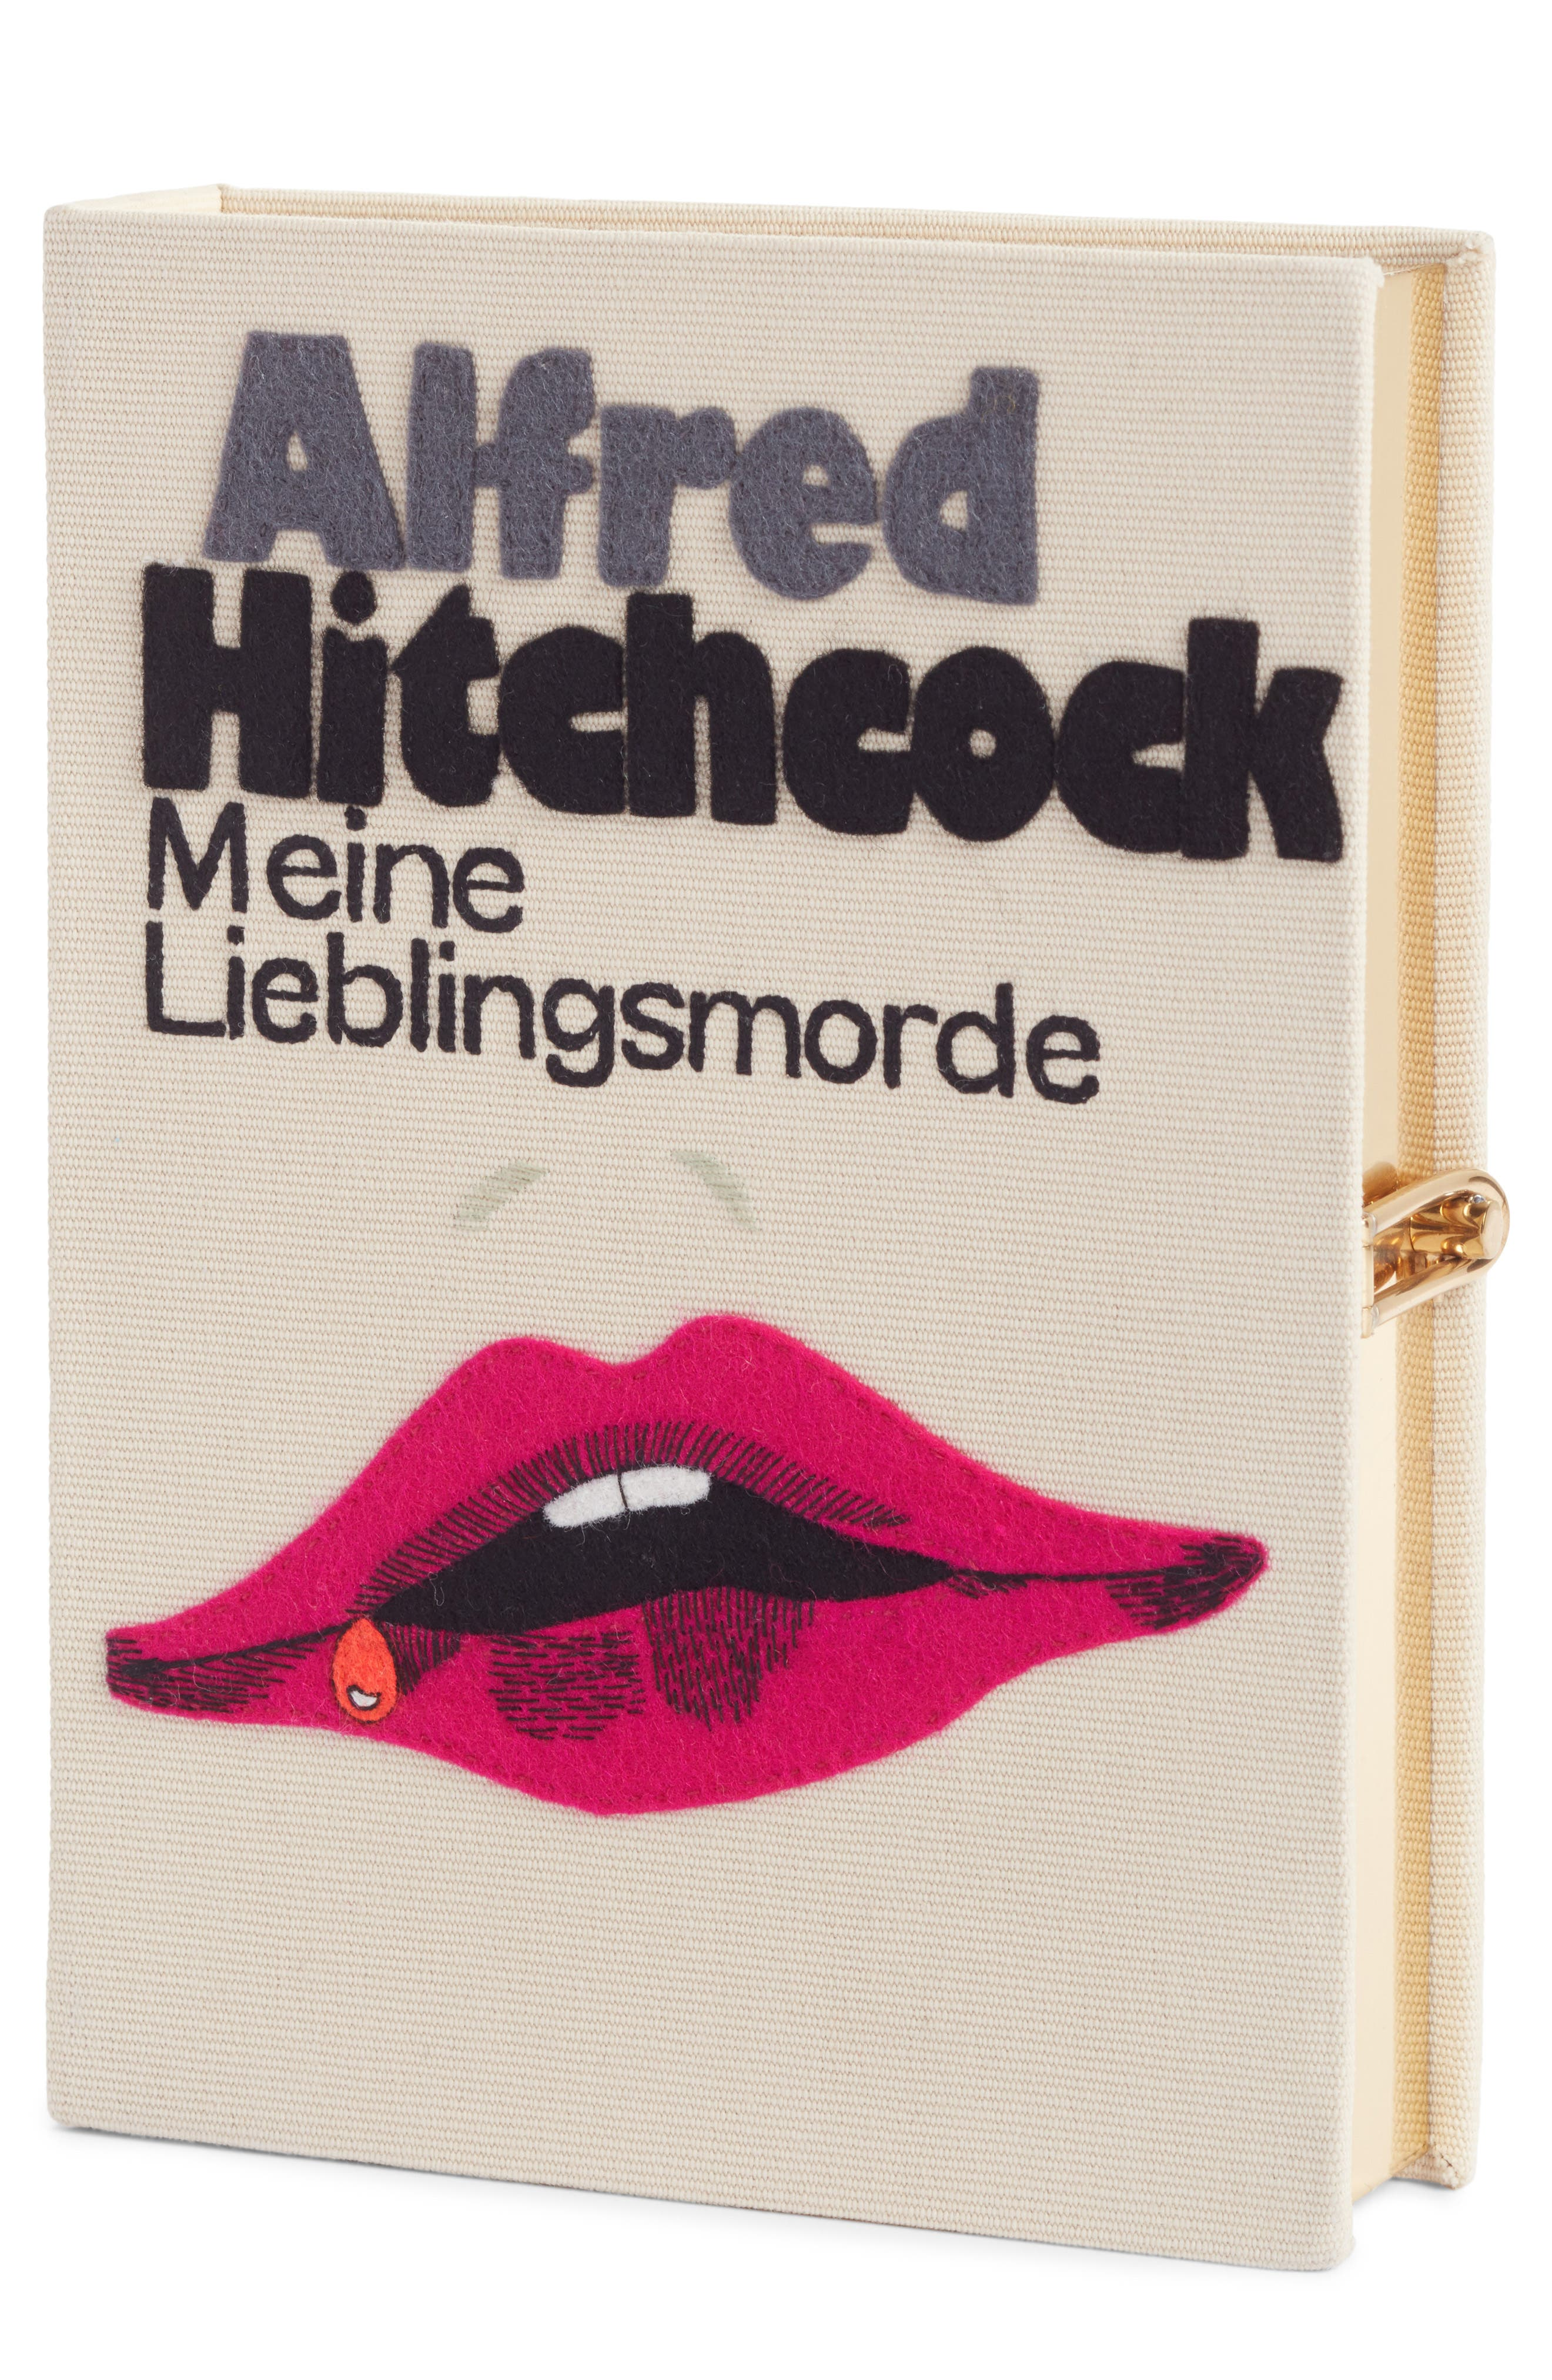 Olympia Le-Tan Hitchcock - 'Meine Lieblingsmorde' Book Clutch